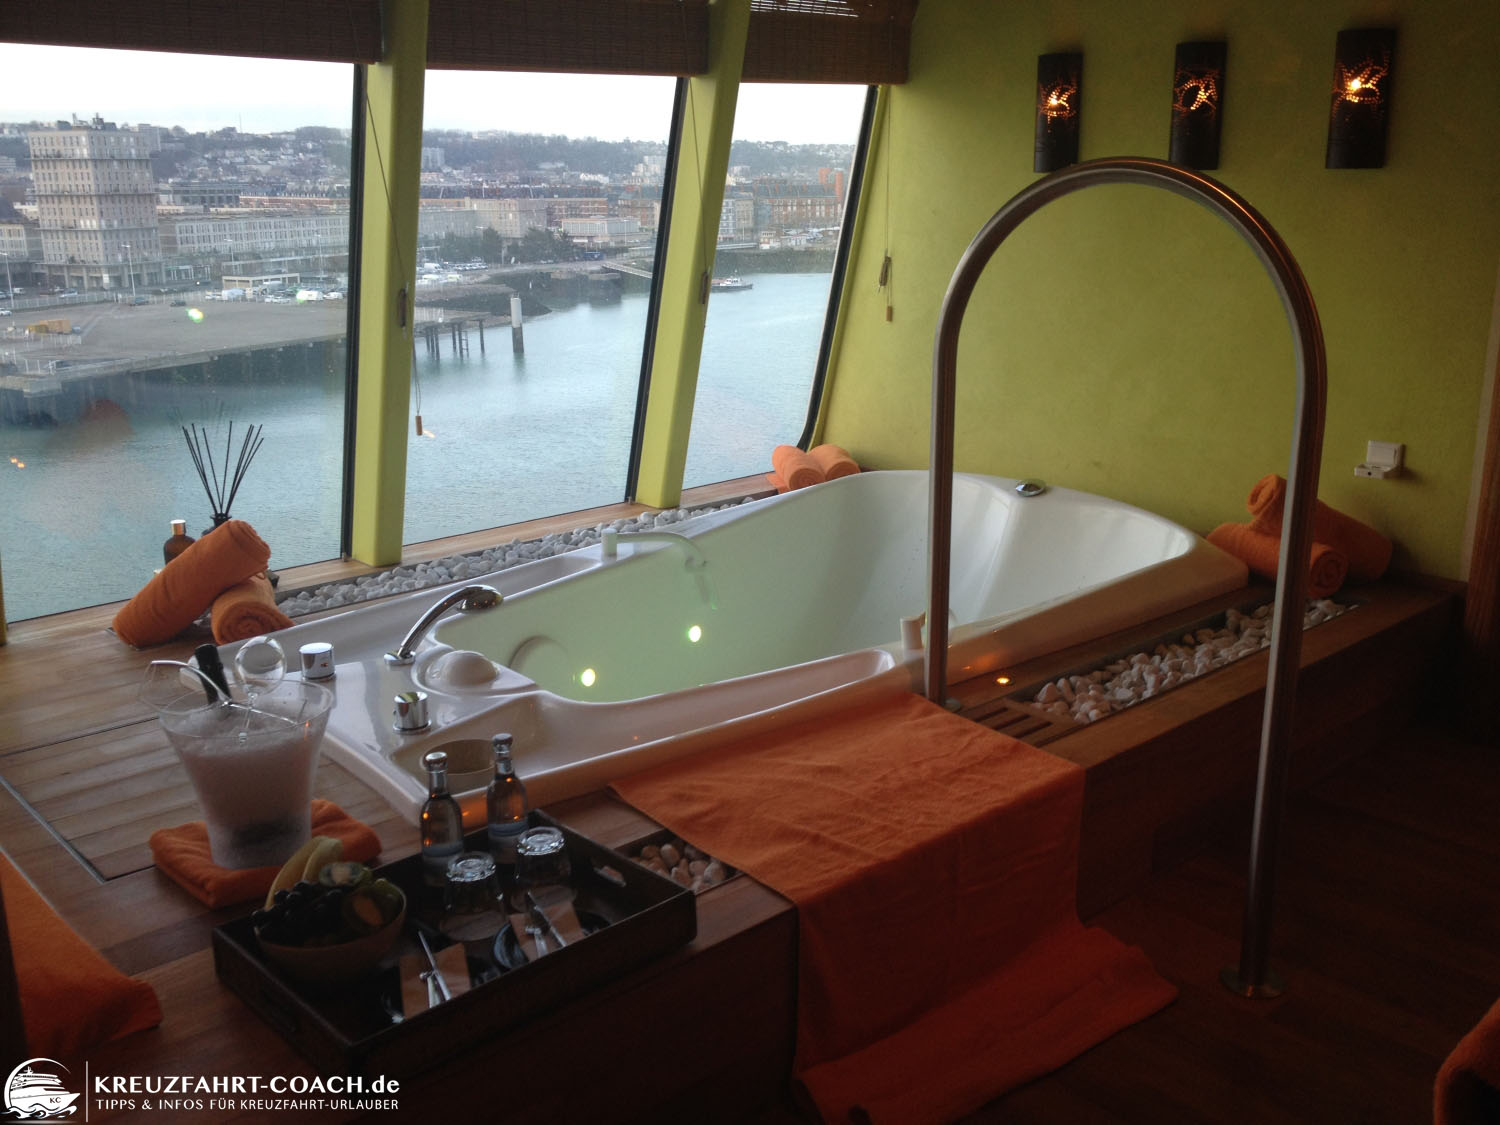 Whirlpool in der Wellnessuite